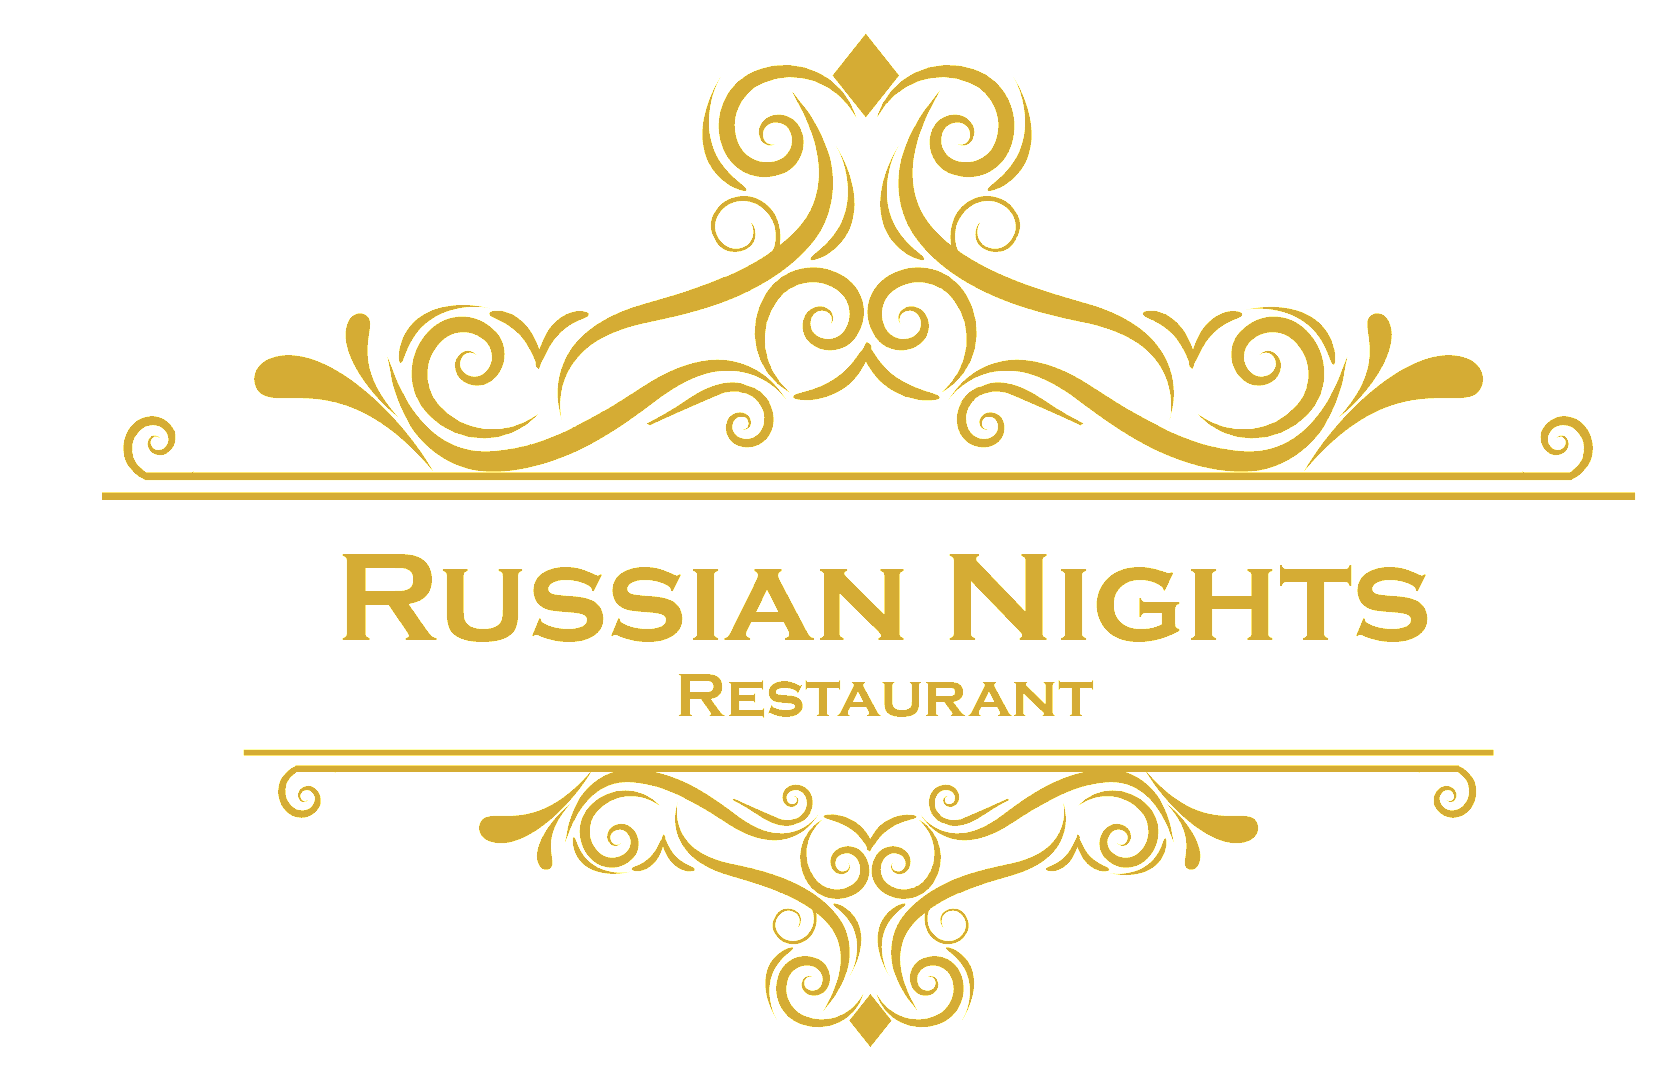 Russian Nights Restaraunt